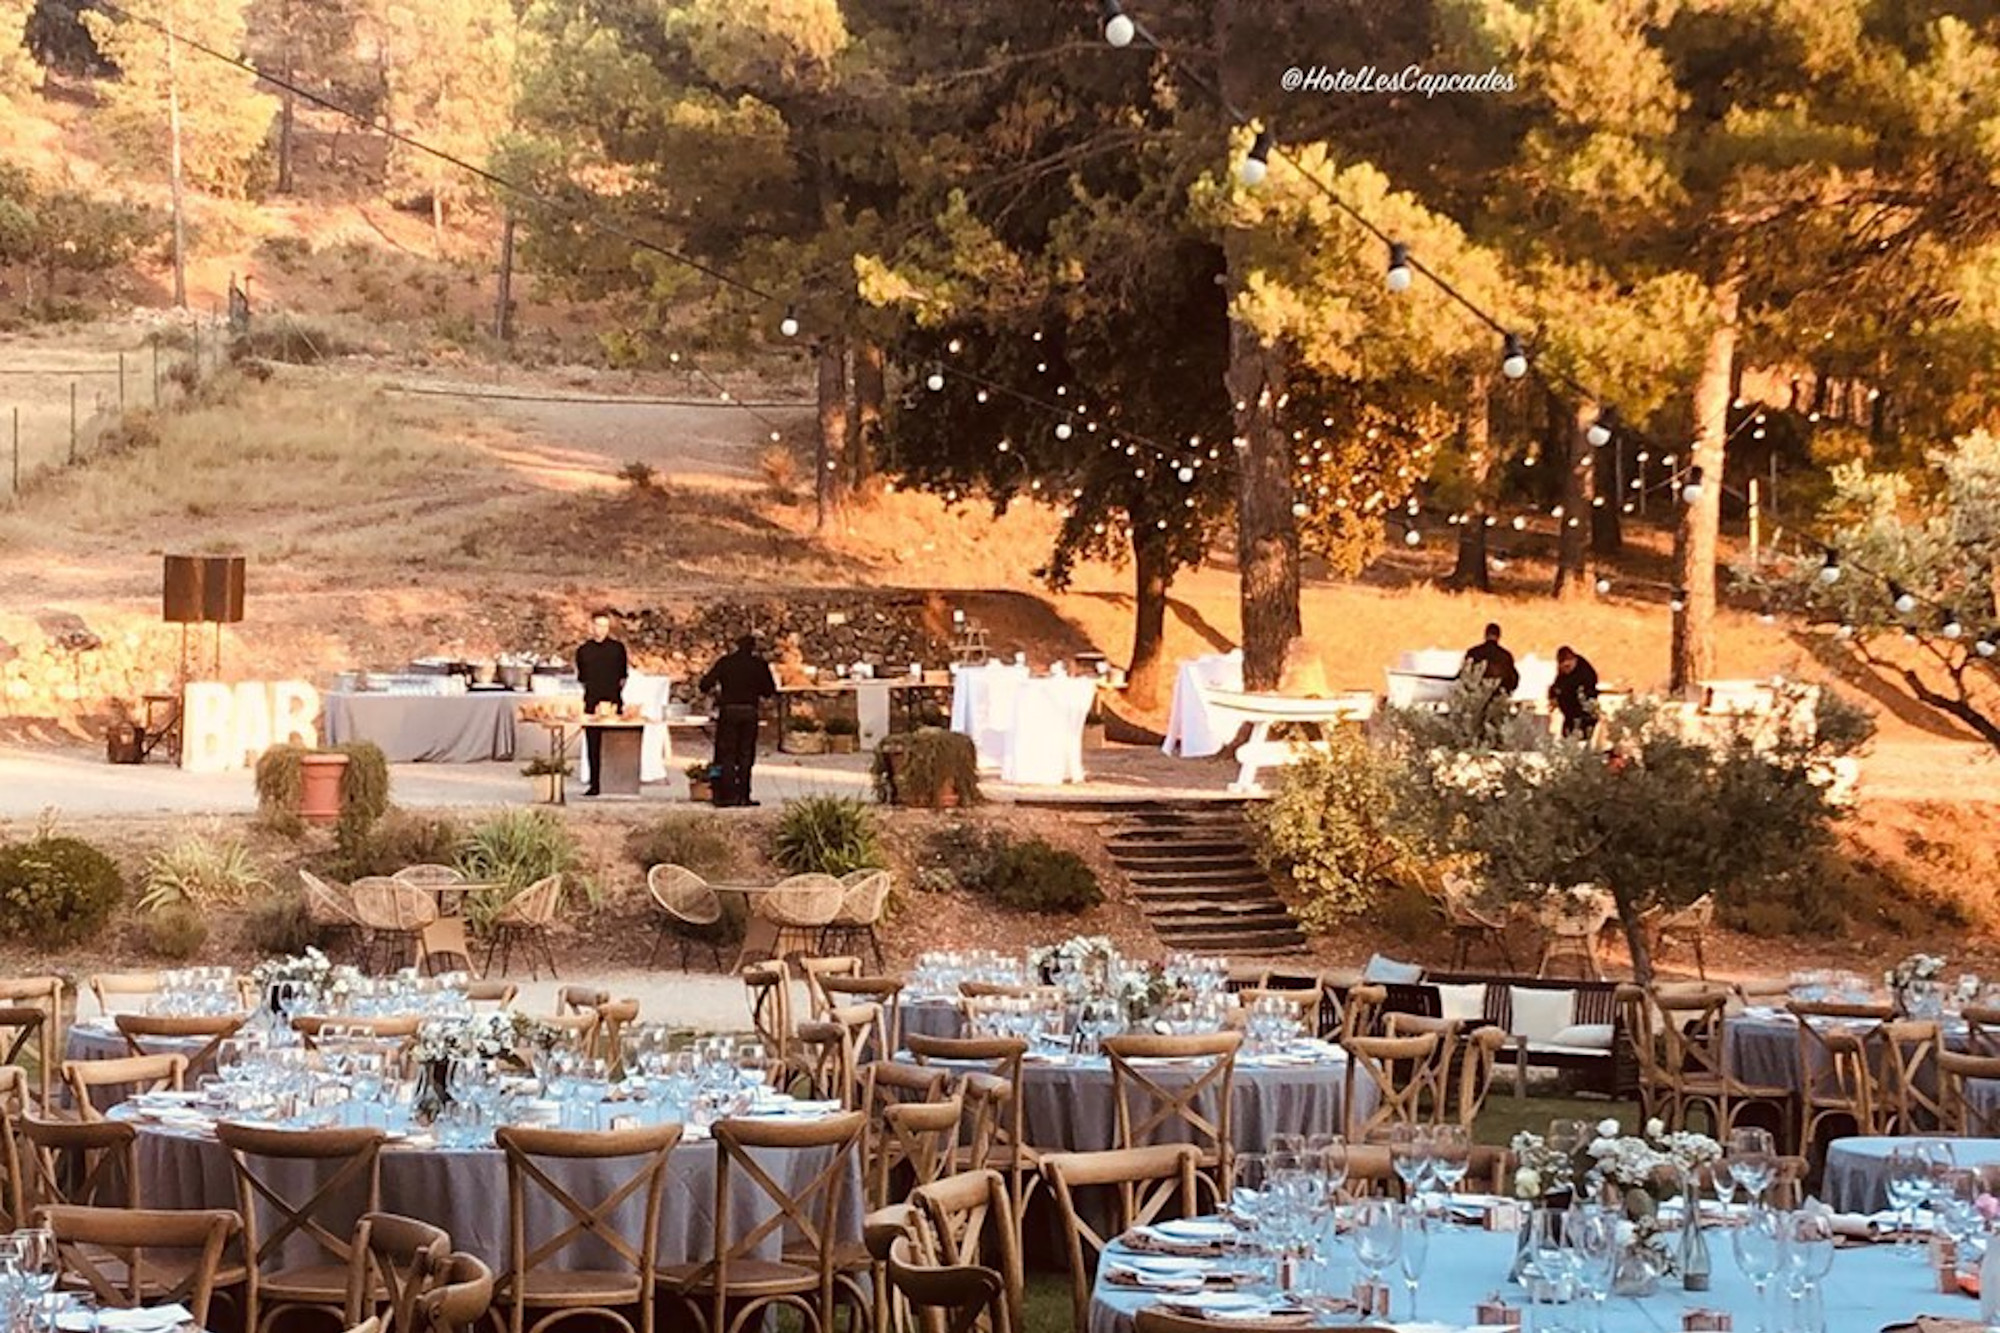 Bodas, restaurante, sitting, mesas, weddings, wedding inspiration, wedding style, ceremonia, wedding planner, novias, parejas